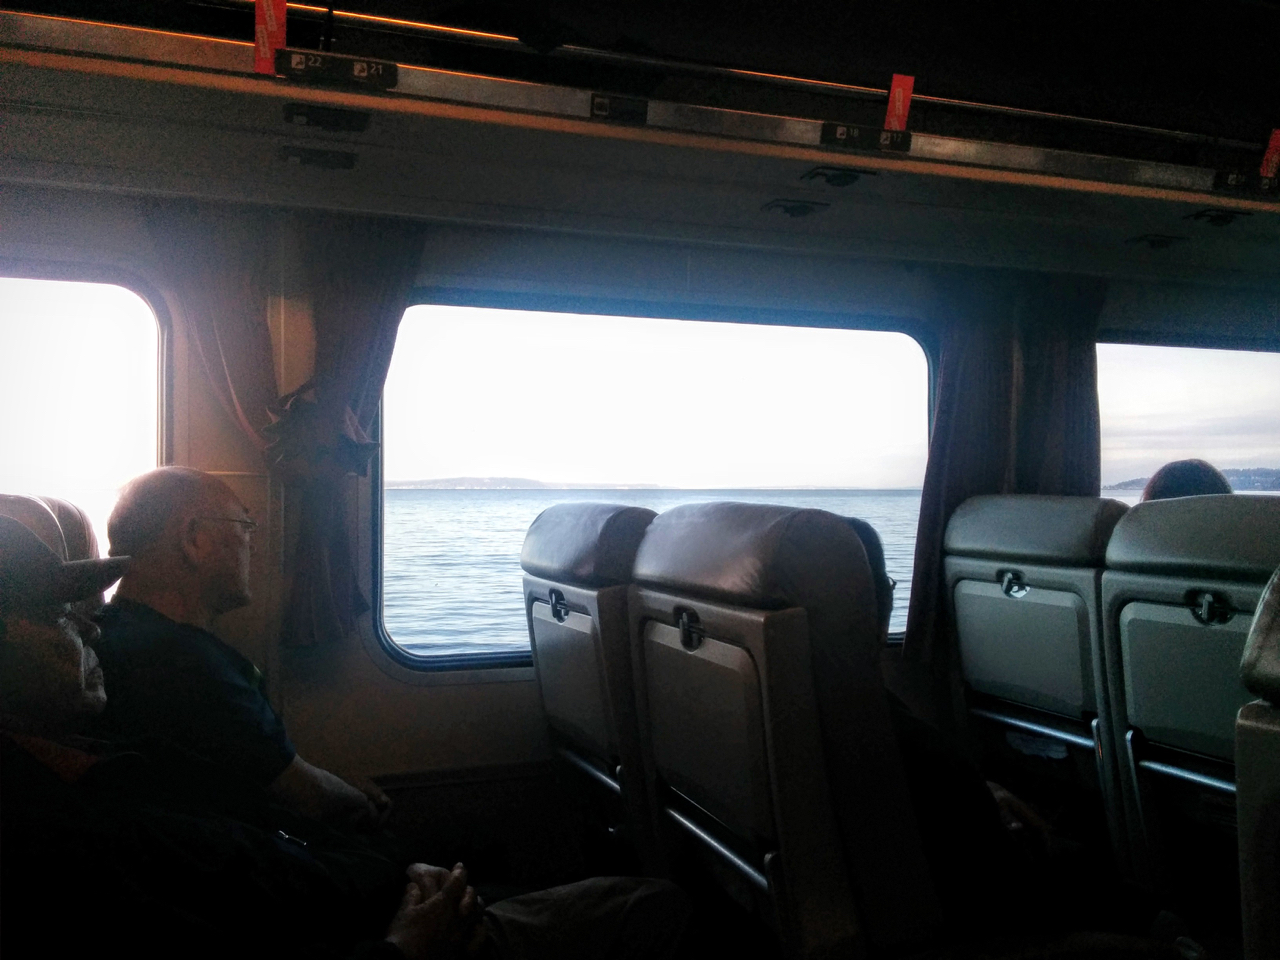 On board train overlooking Pacific